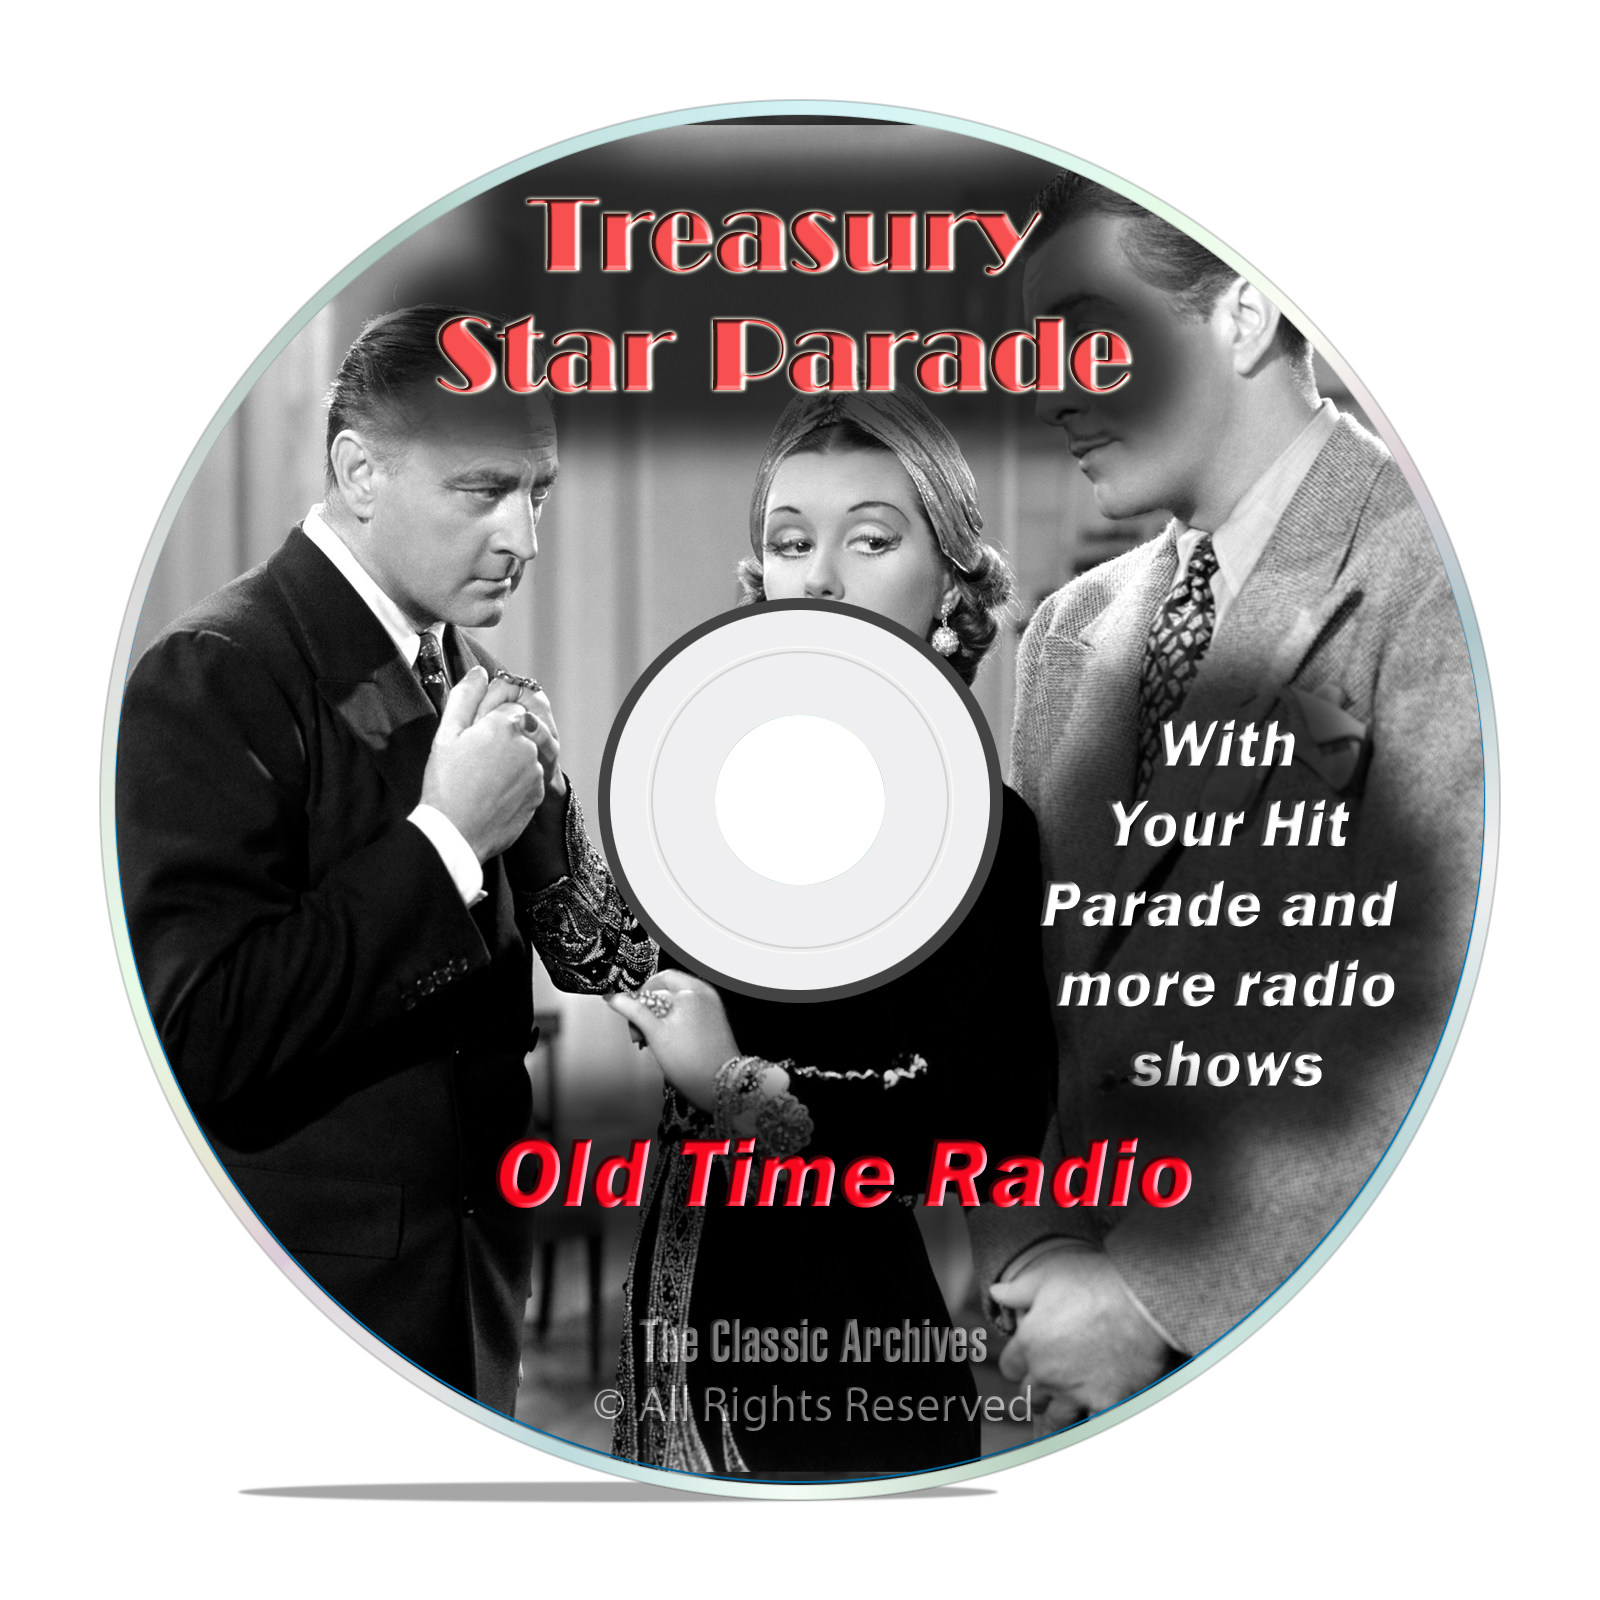 Treasury Star Parade, 997 Old Time Radio Music, Country, Western Shows DVD